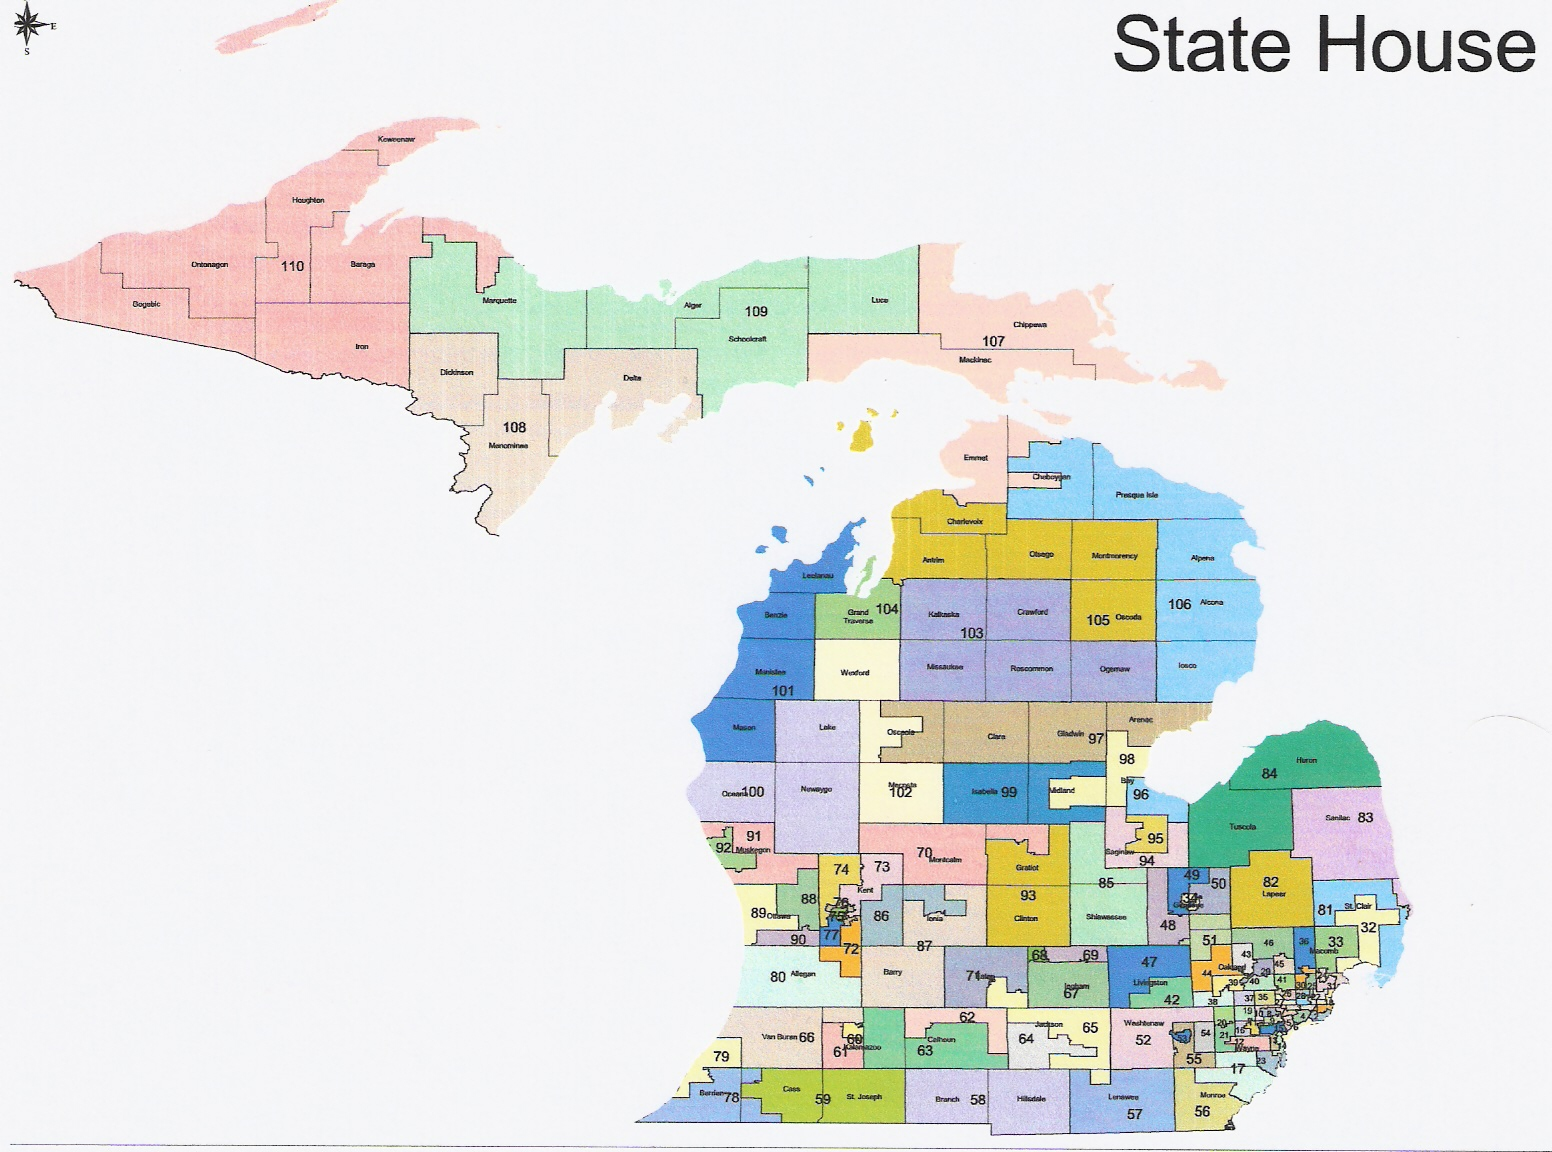 Michigan State House Of Representatives District Map Michigan Map - Michigan state map